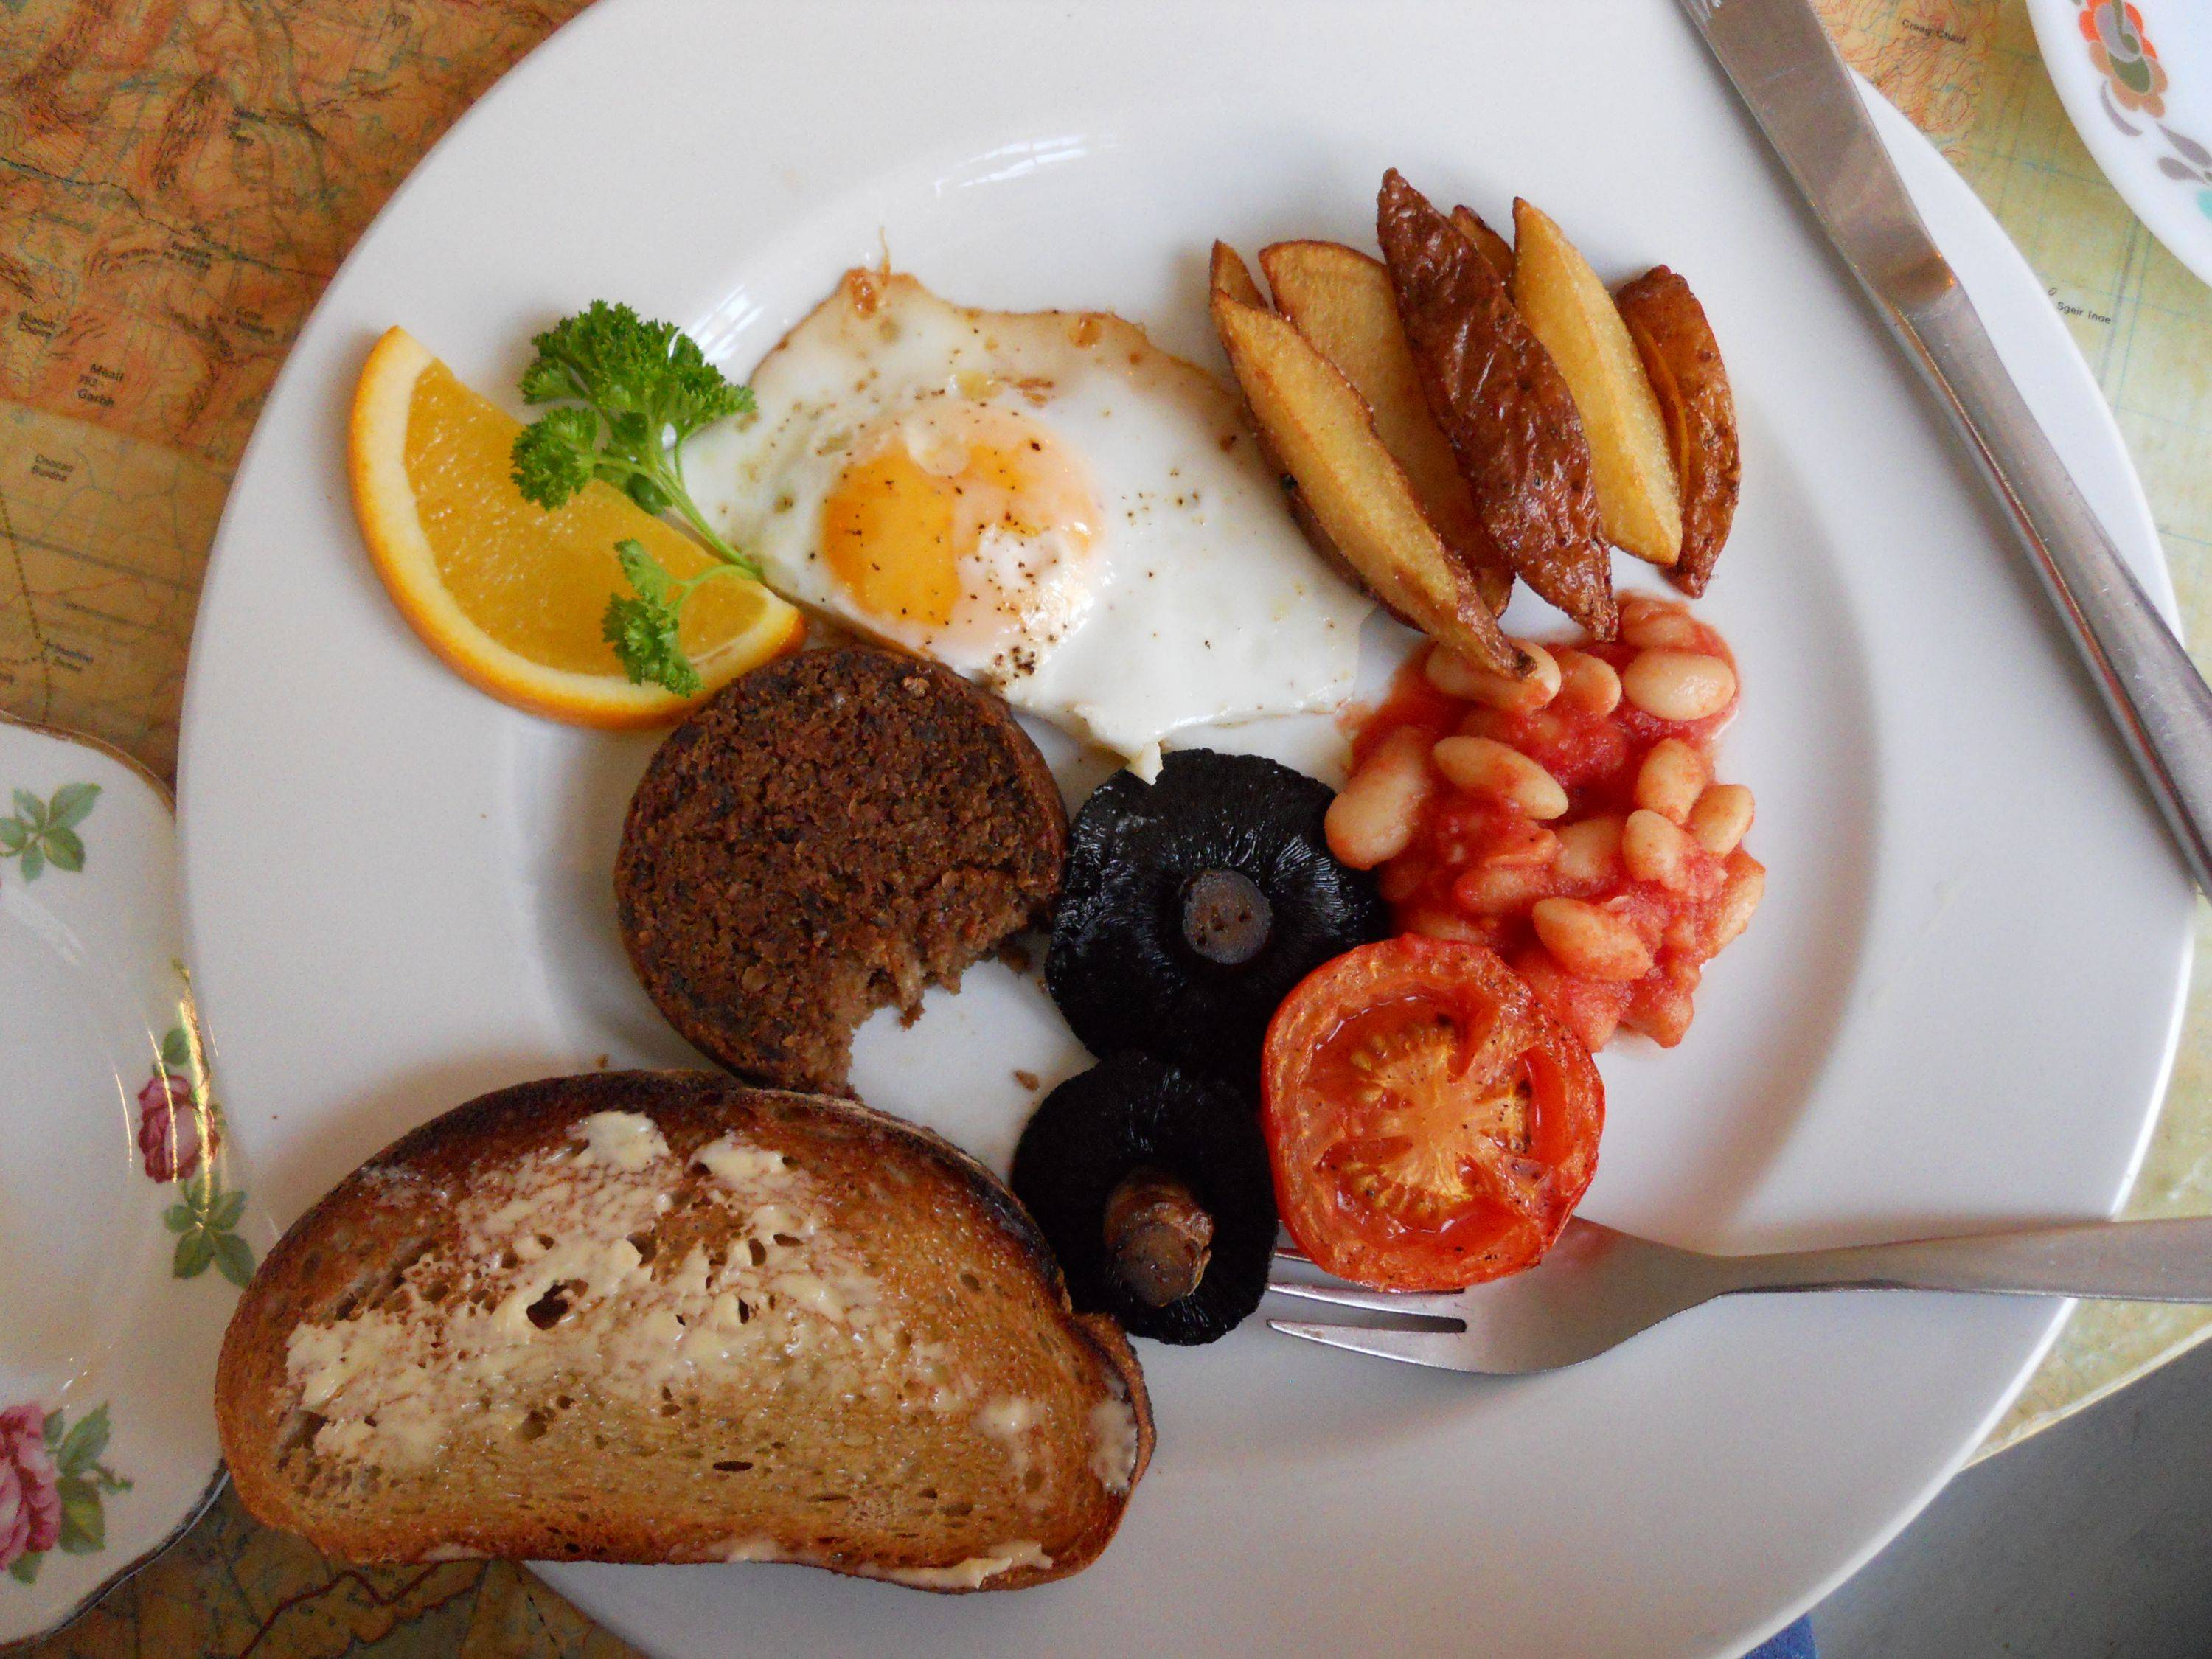 EAT: TRADITIONAL SCOTTISH BREAKFAST